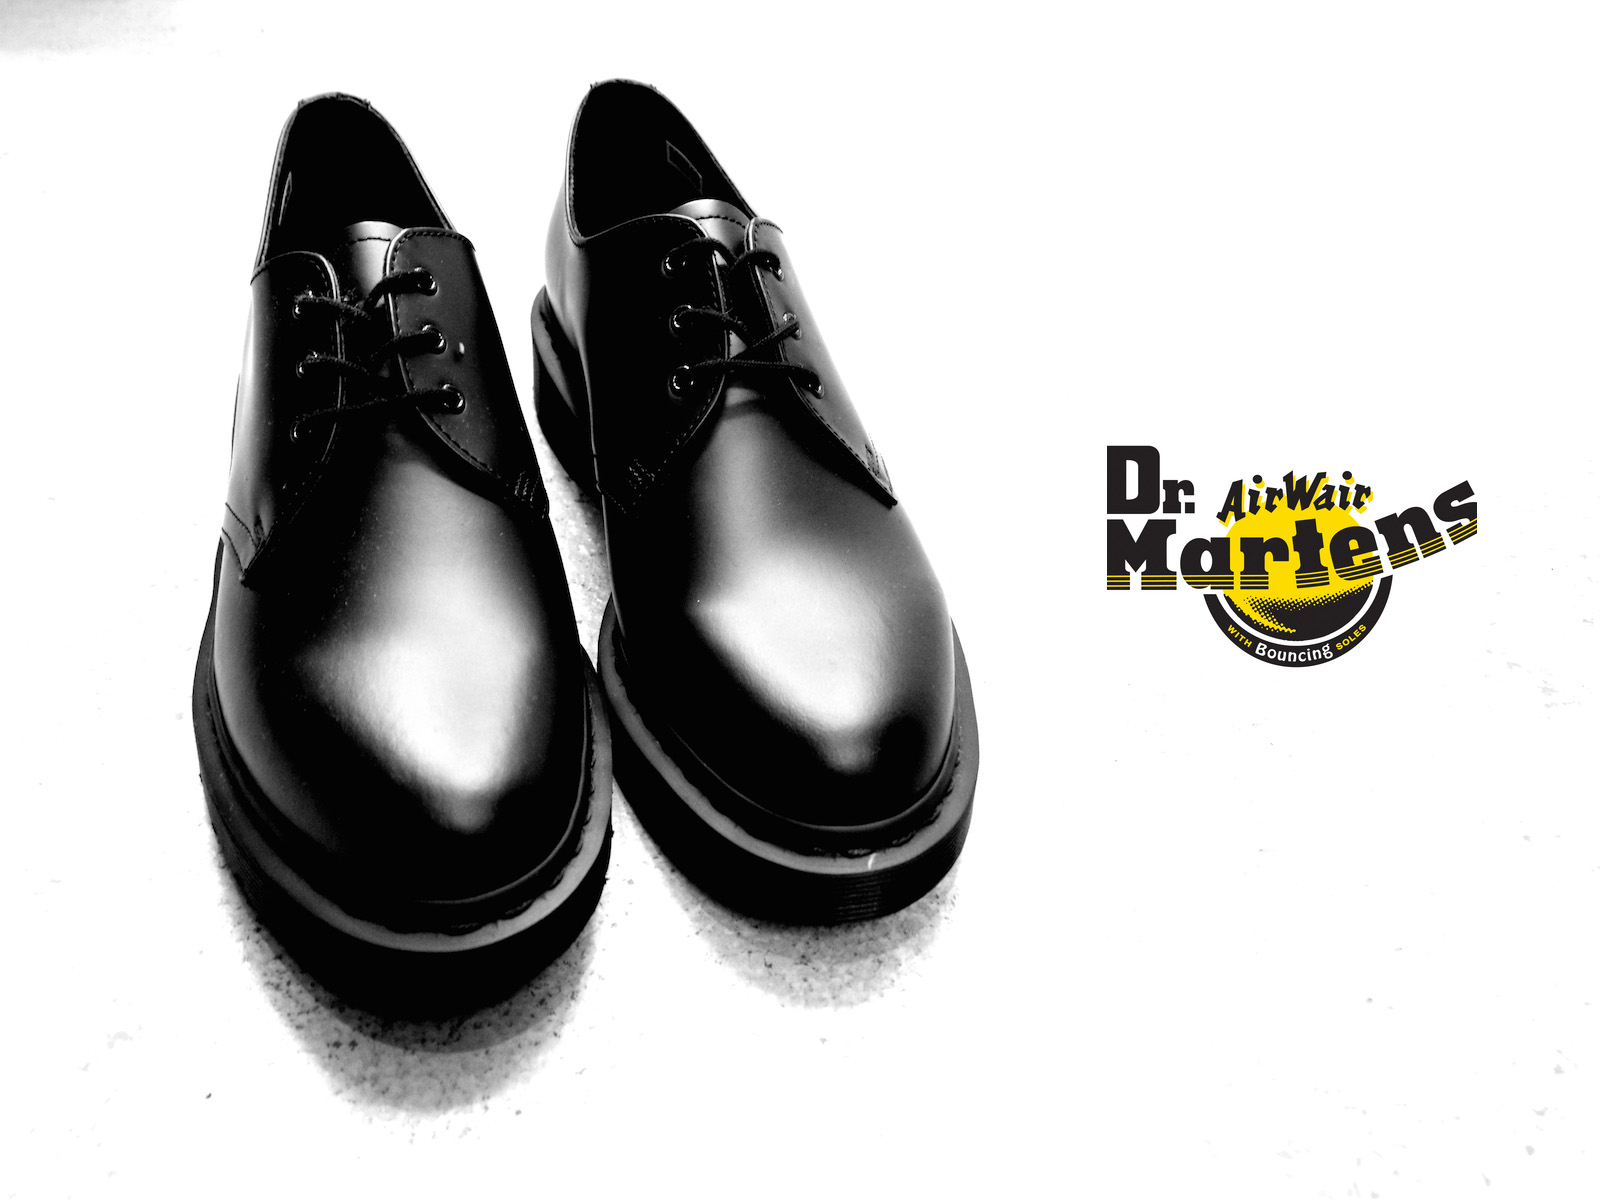 NEW ARRIVAL / DR. MARTENS – ALL BLACK 3 HOLE BOOTS